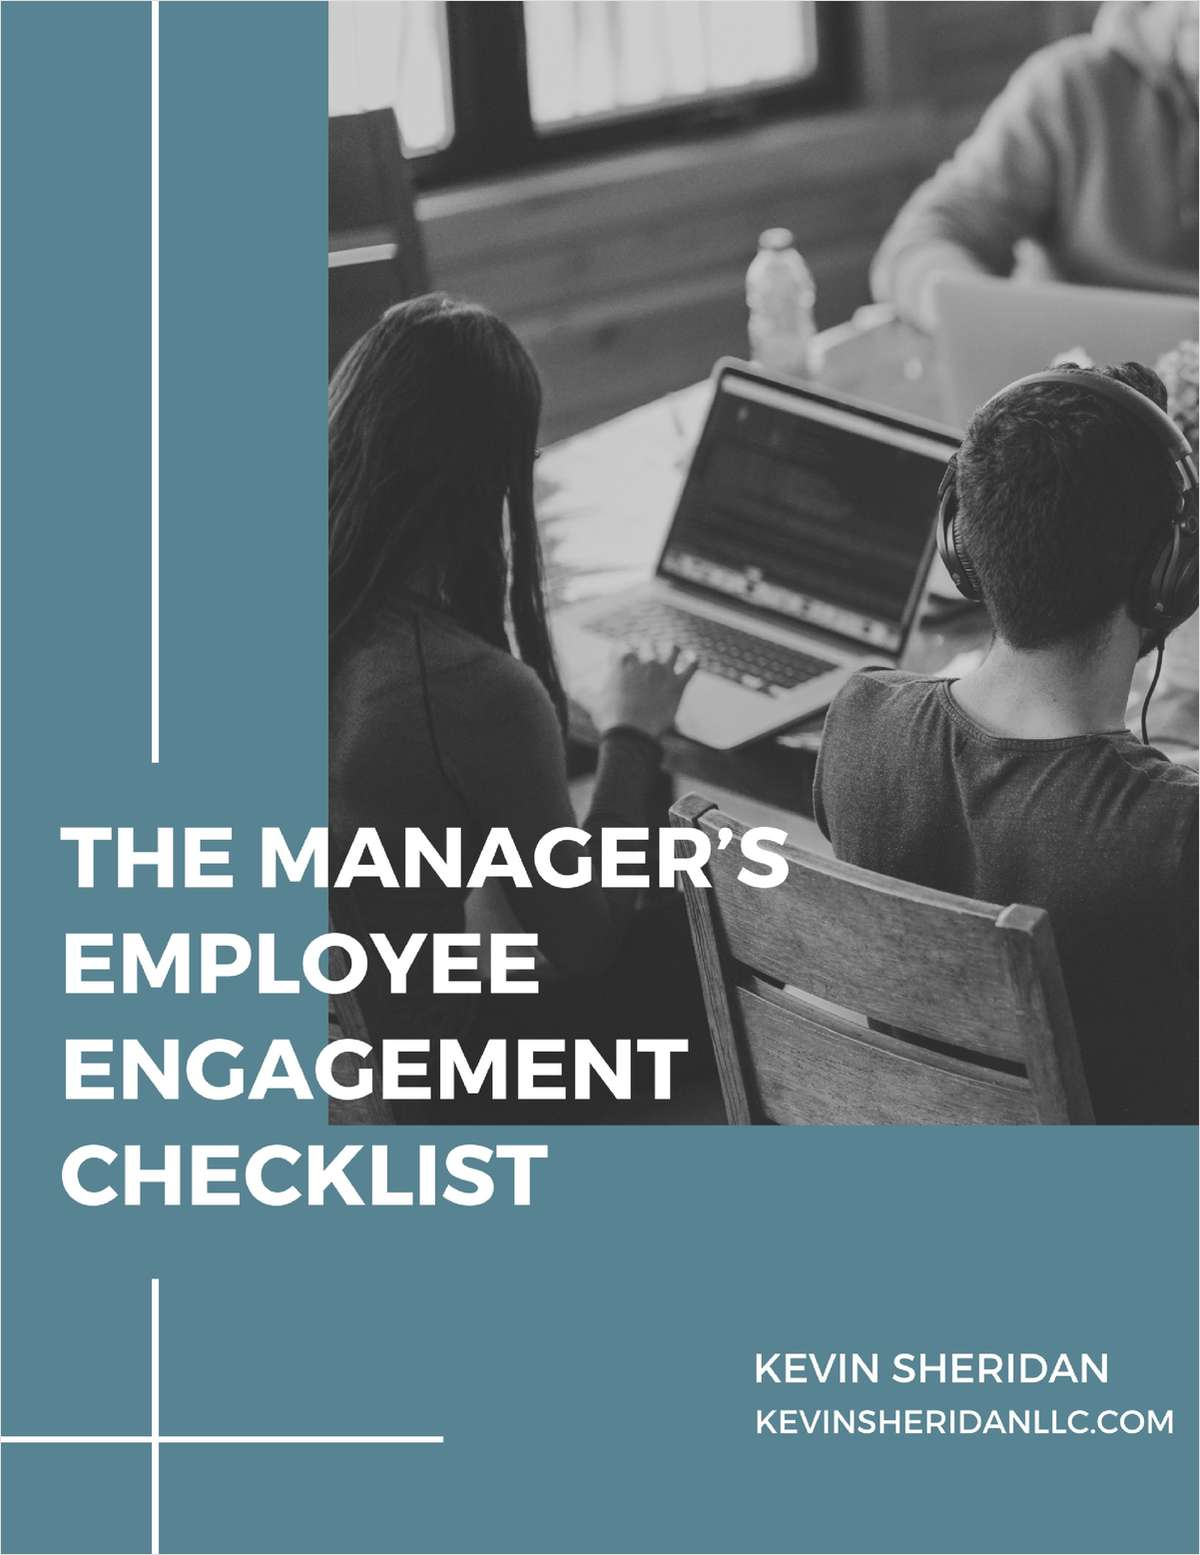 The Manager's Employee Engagement Checklist. Free Kevin Sheridan Checklist